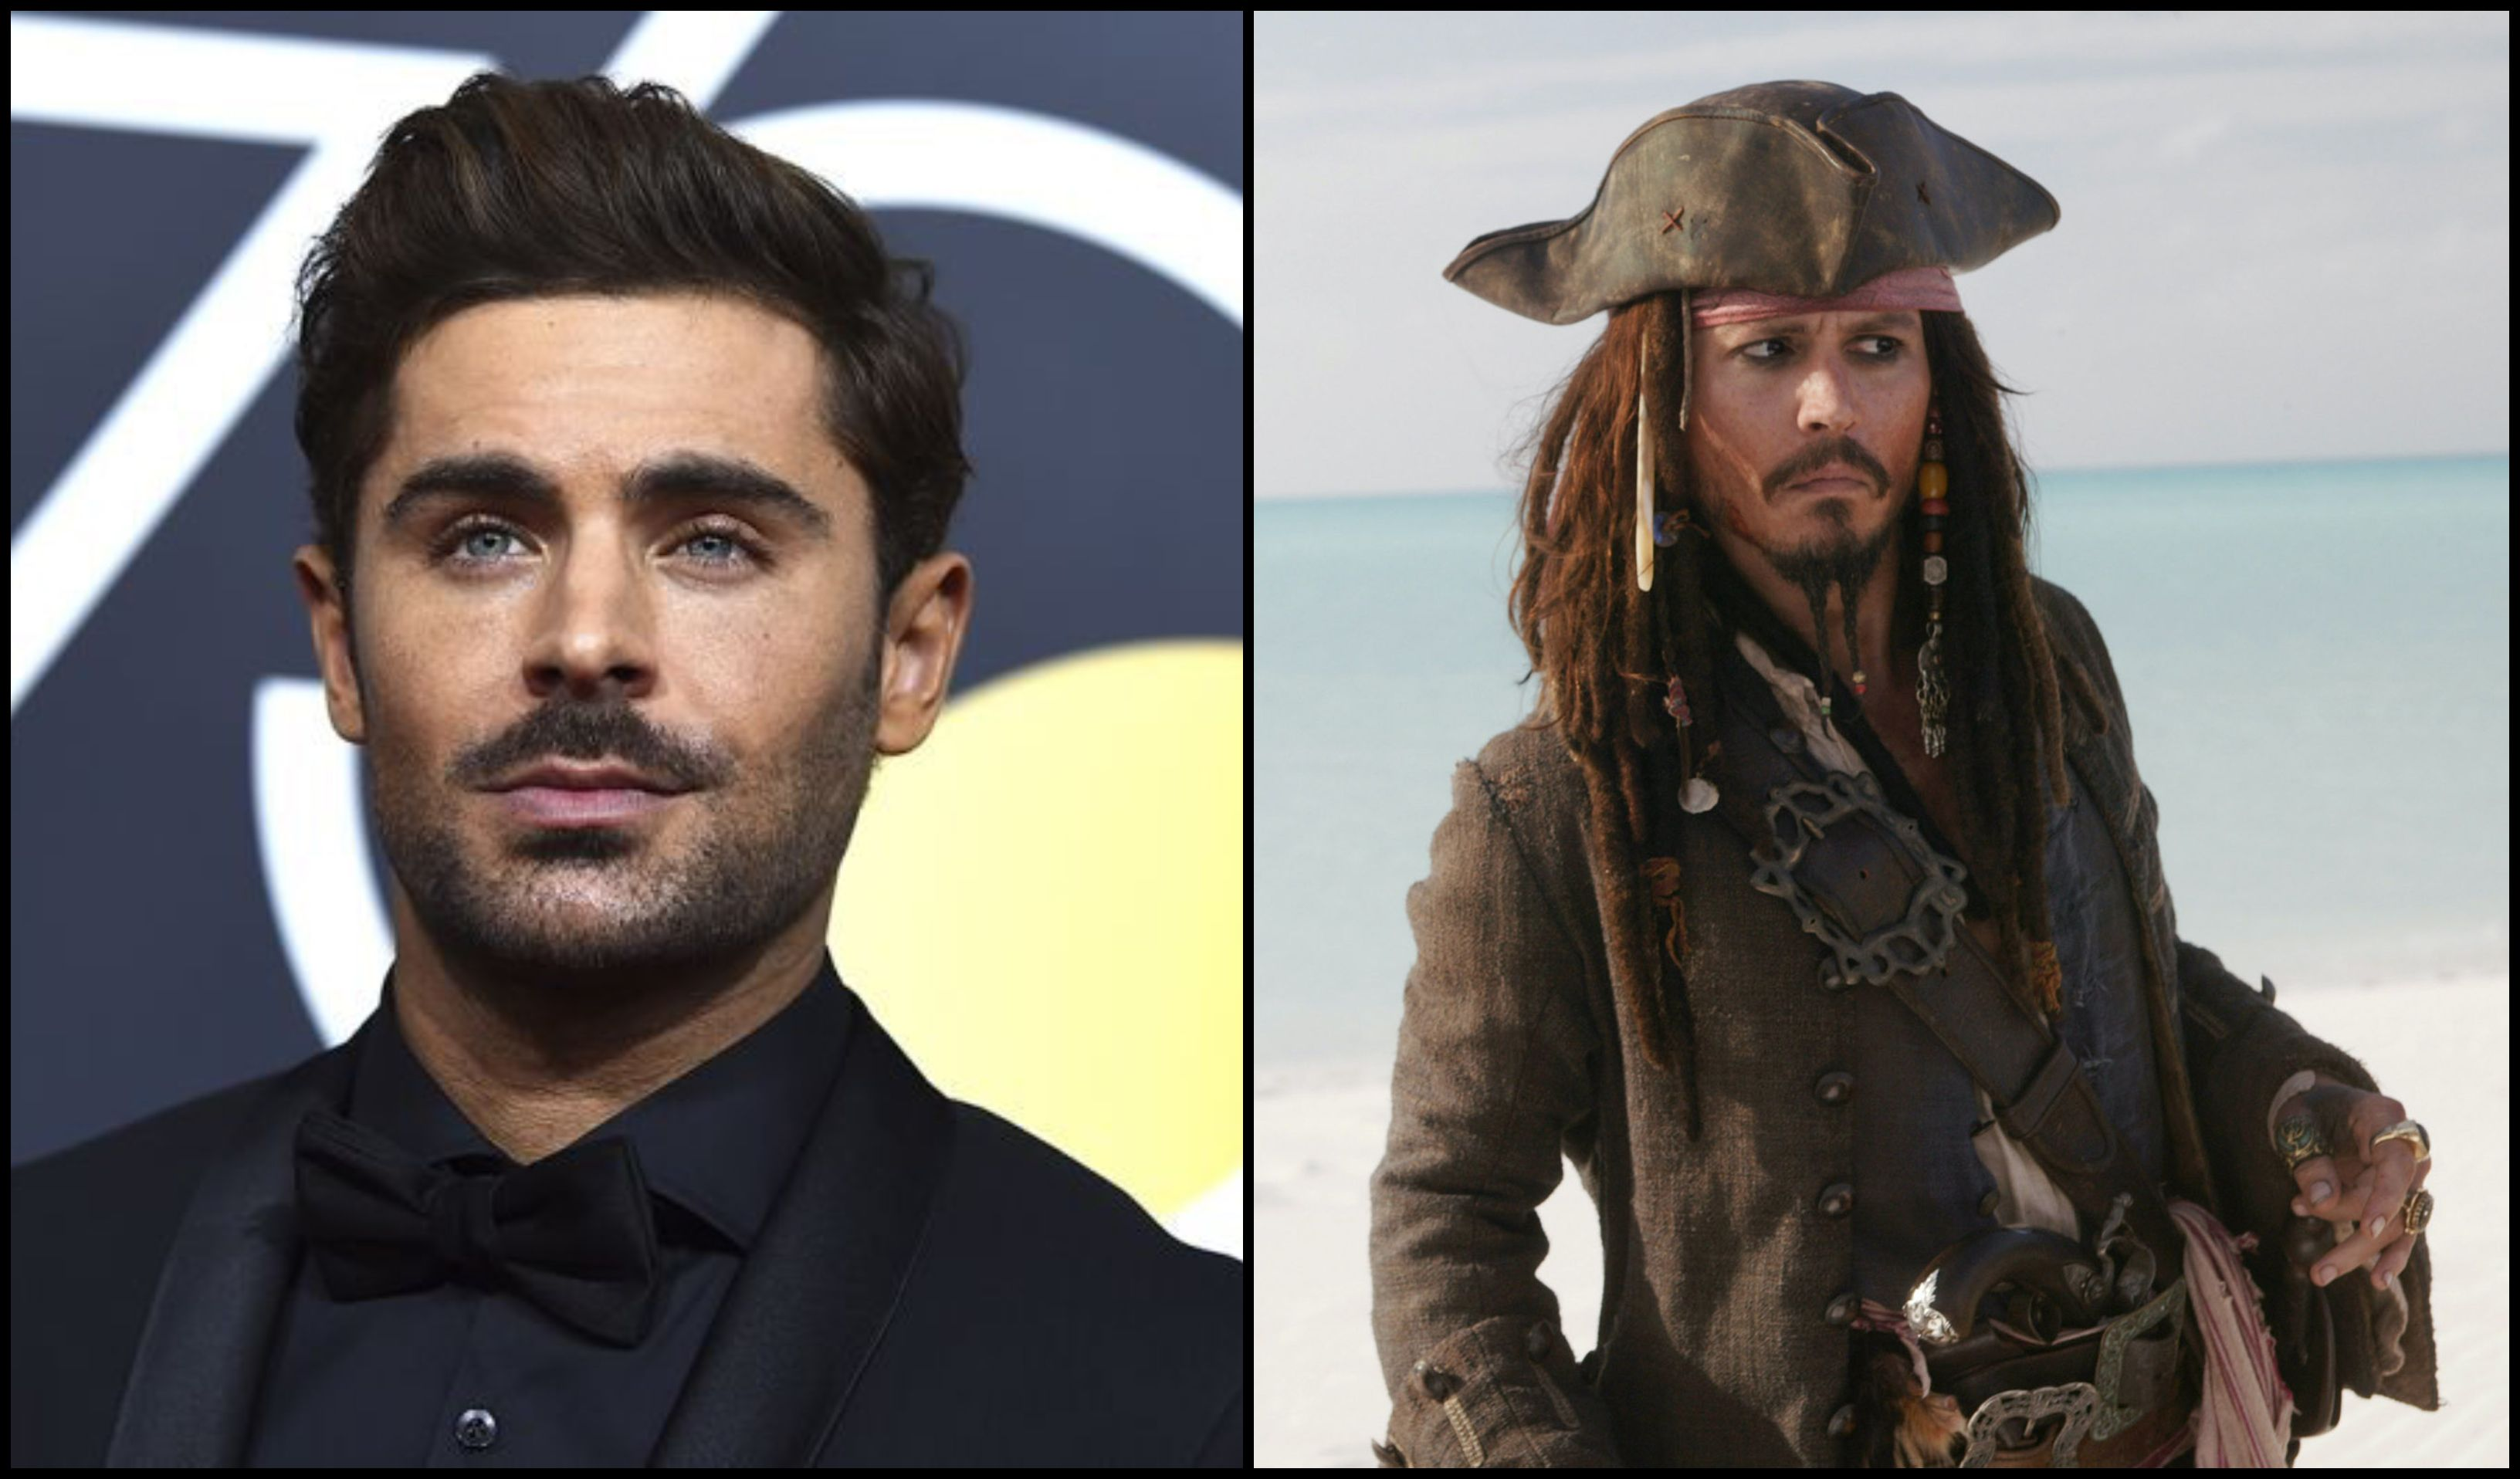 Disney Reportedly Looking To Cast Zac Efron As Captain Jack